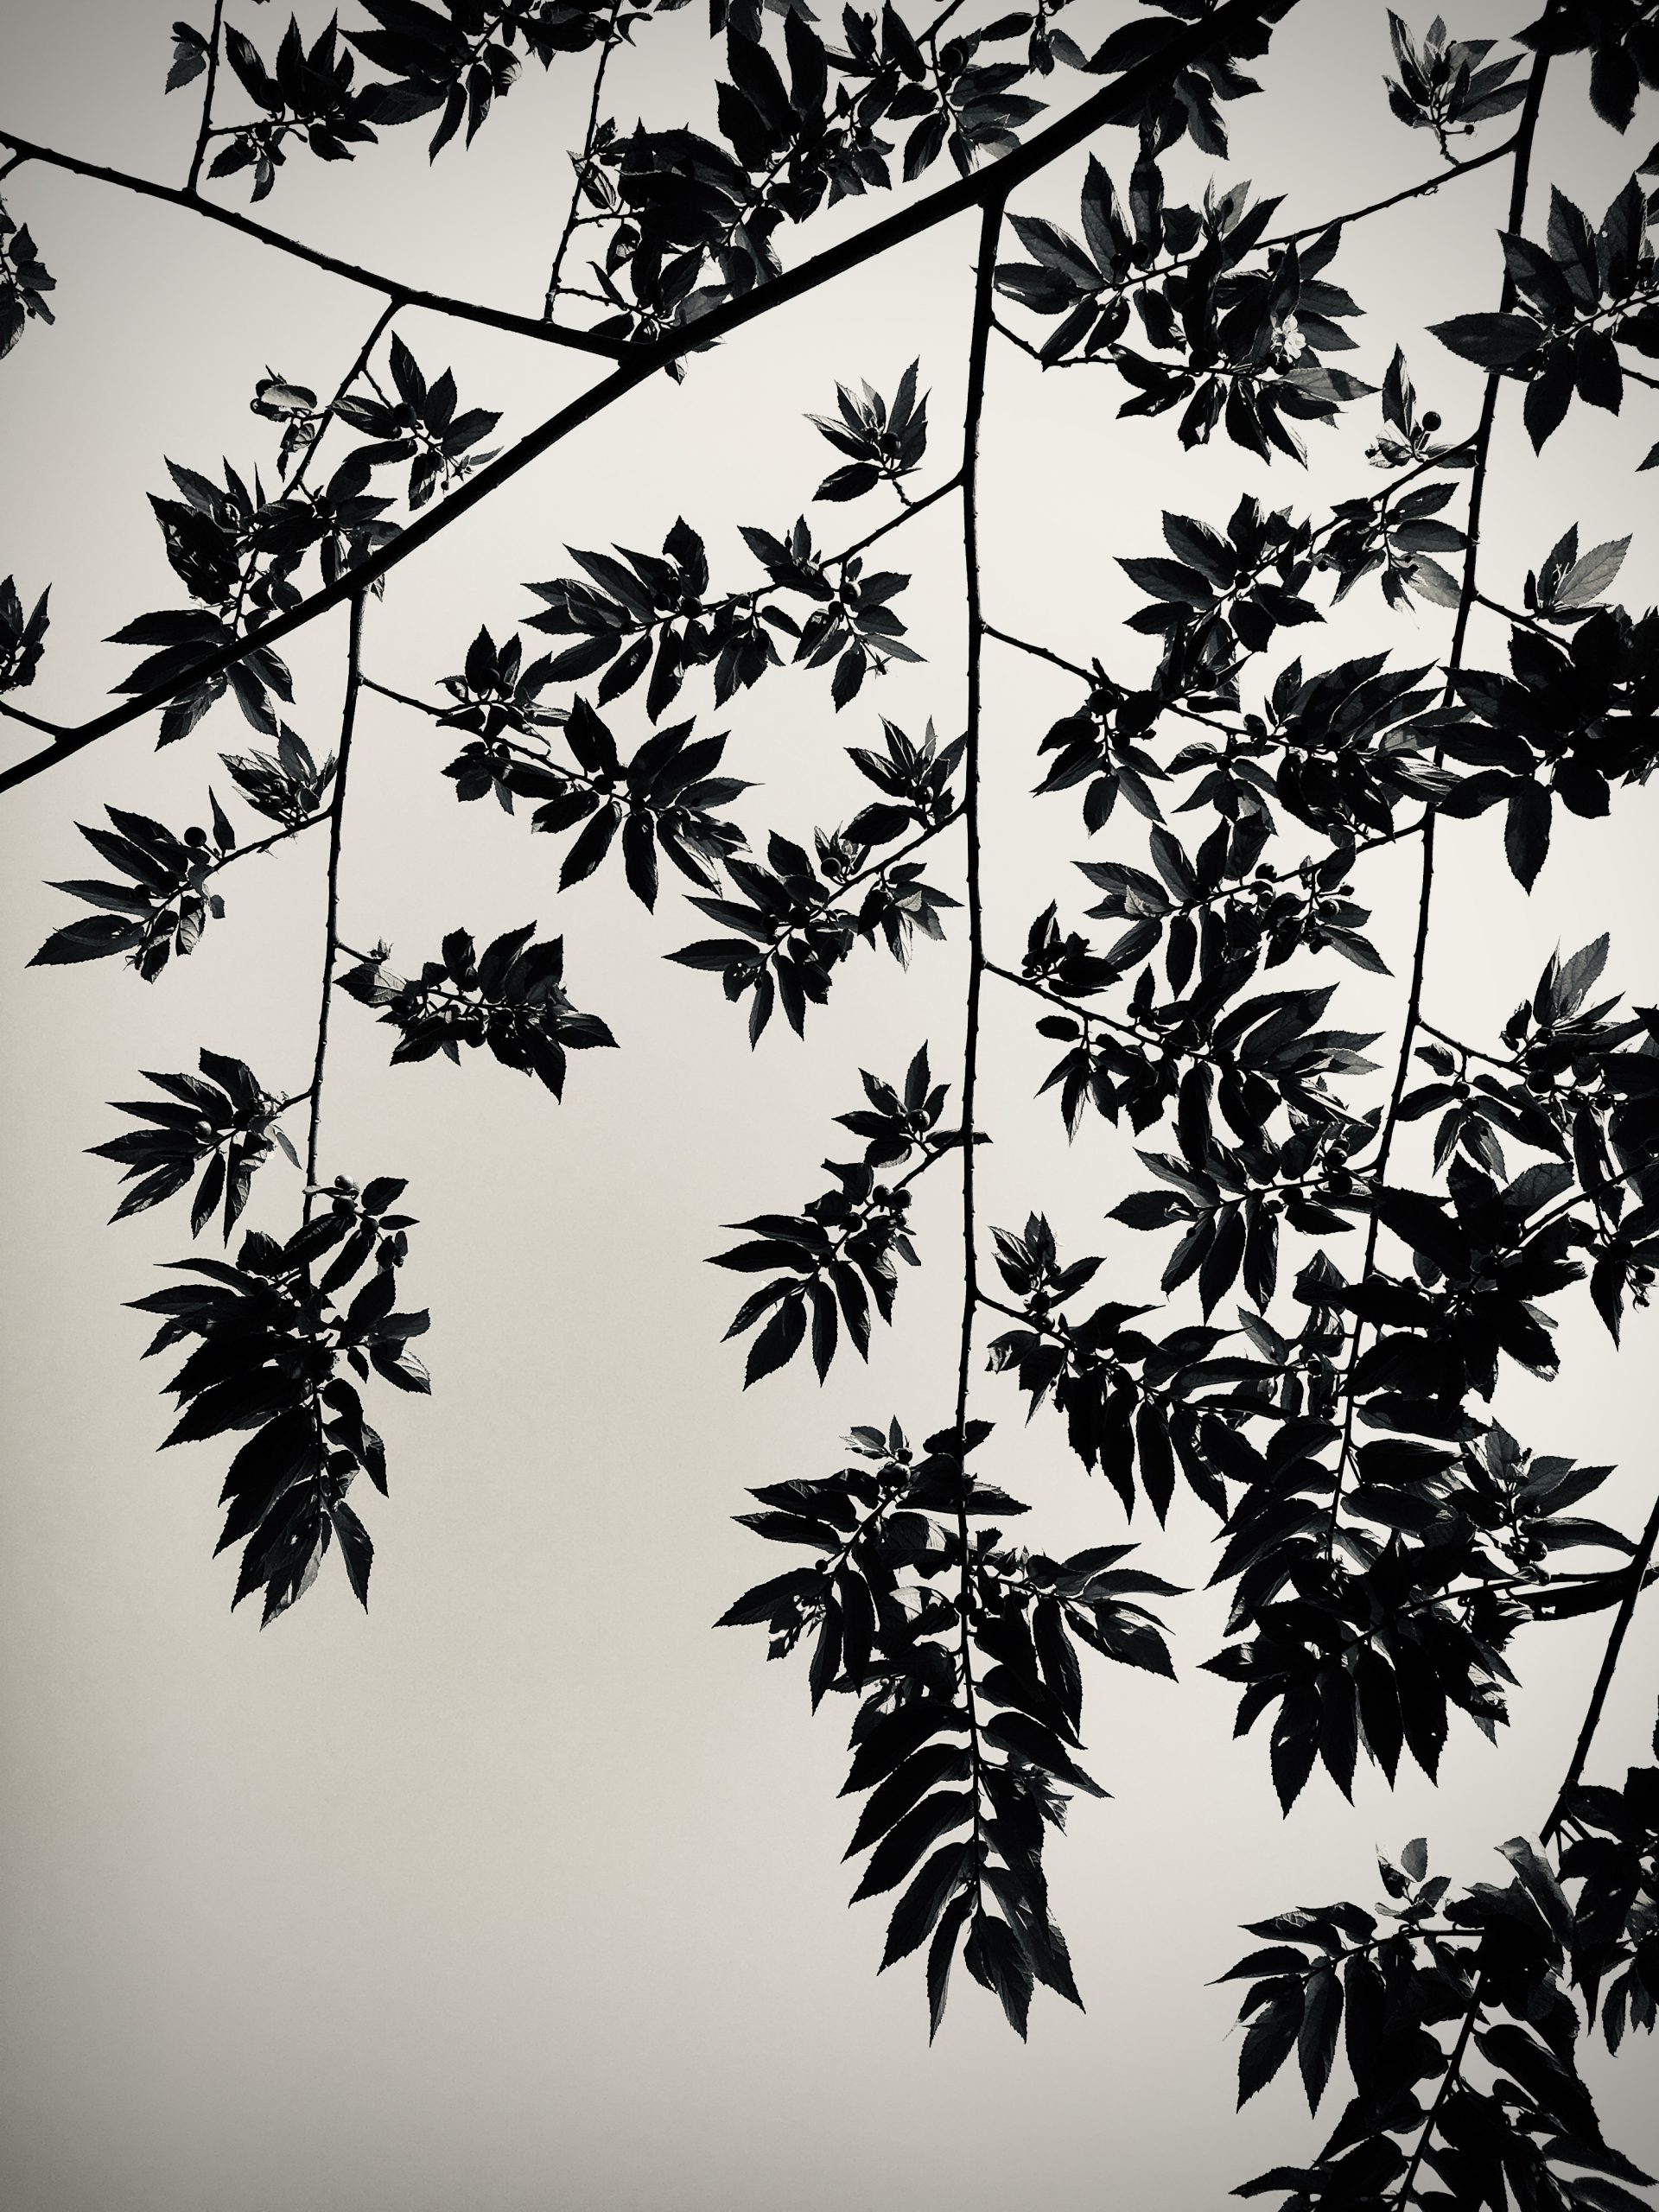 Branches and leaves of a tree